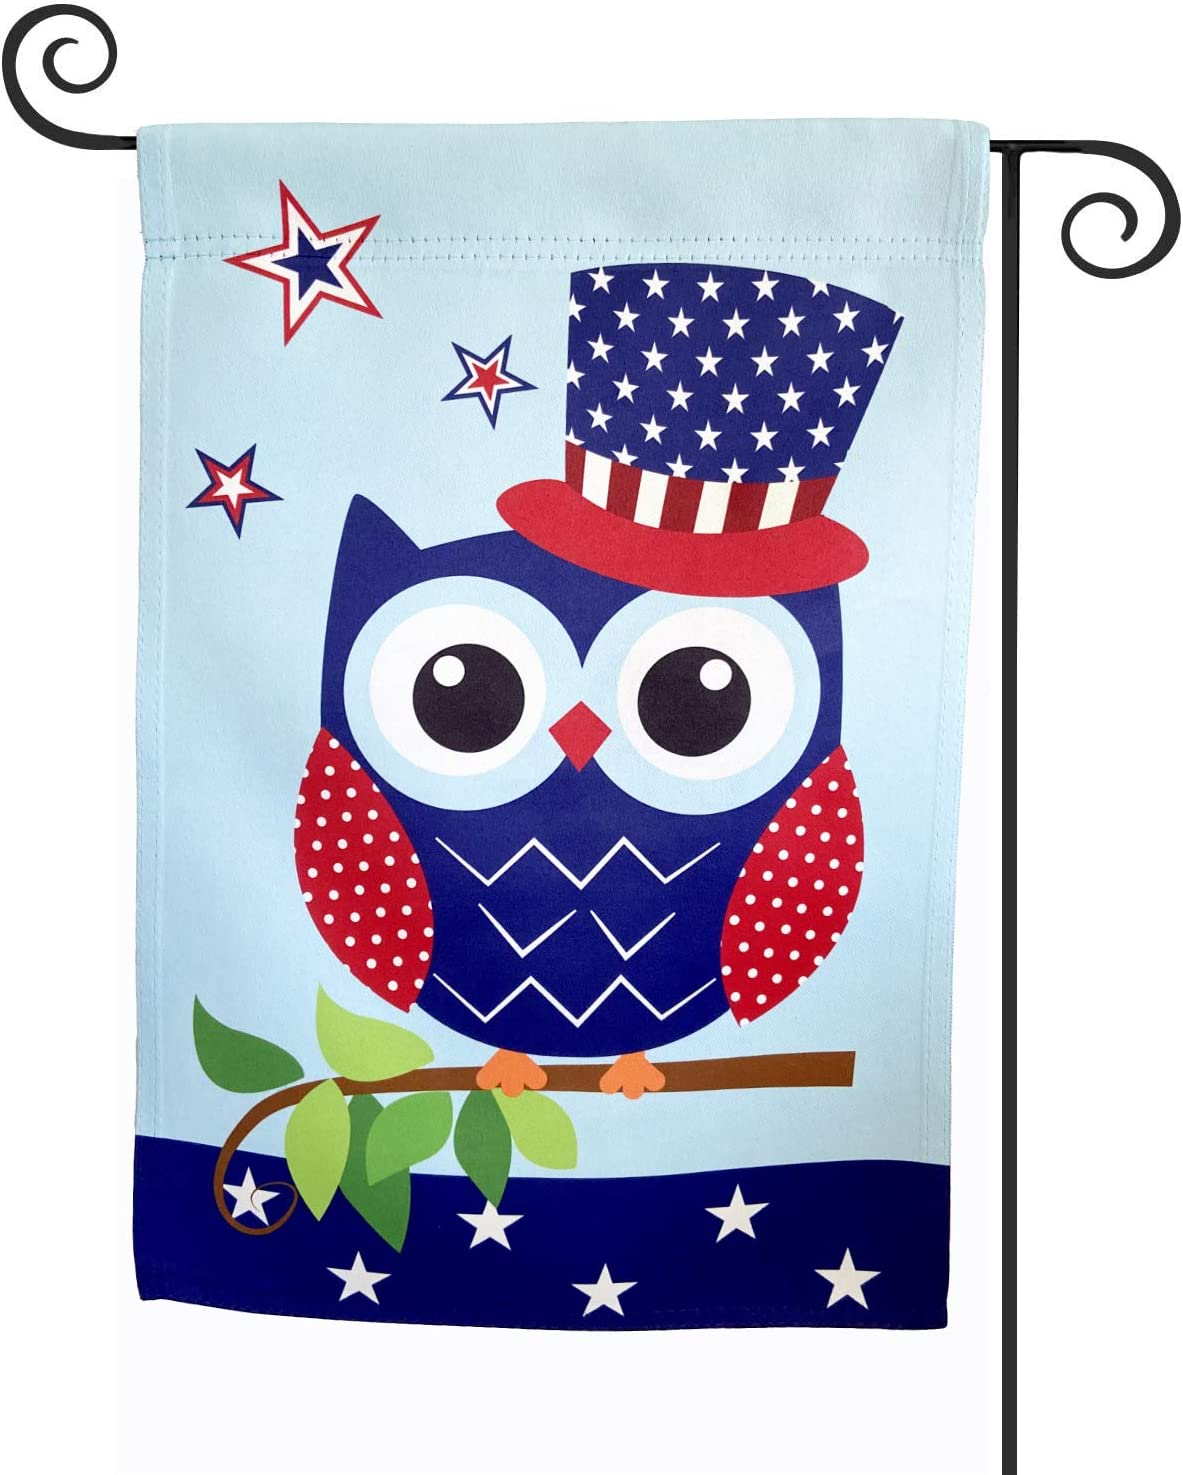 TOPFLAGS Owl Garden Flags Double Sided- 12.5 x 18 Inch Top Hat Big Eyes in The Tree Yard Flag for House Outdoor Decoration